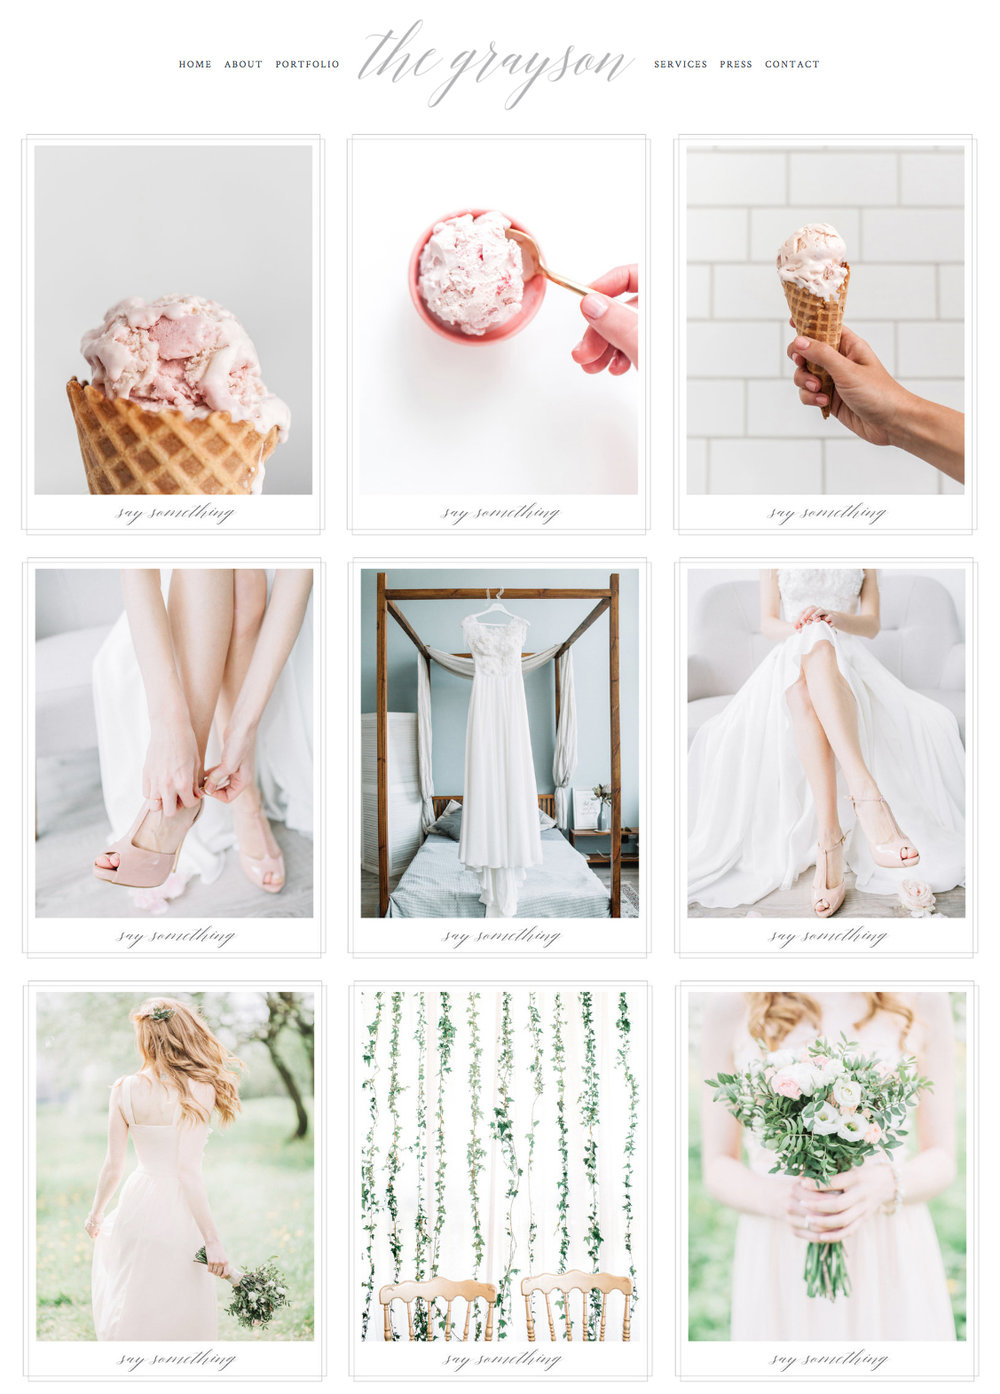 The Editor's Touch Website Design | Squarespace Web Designer For Wedding Professionals and Creatives